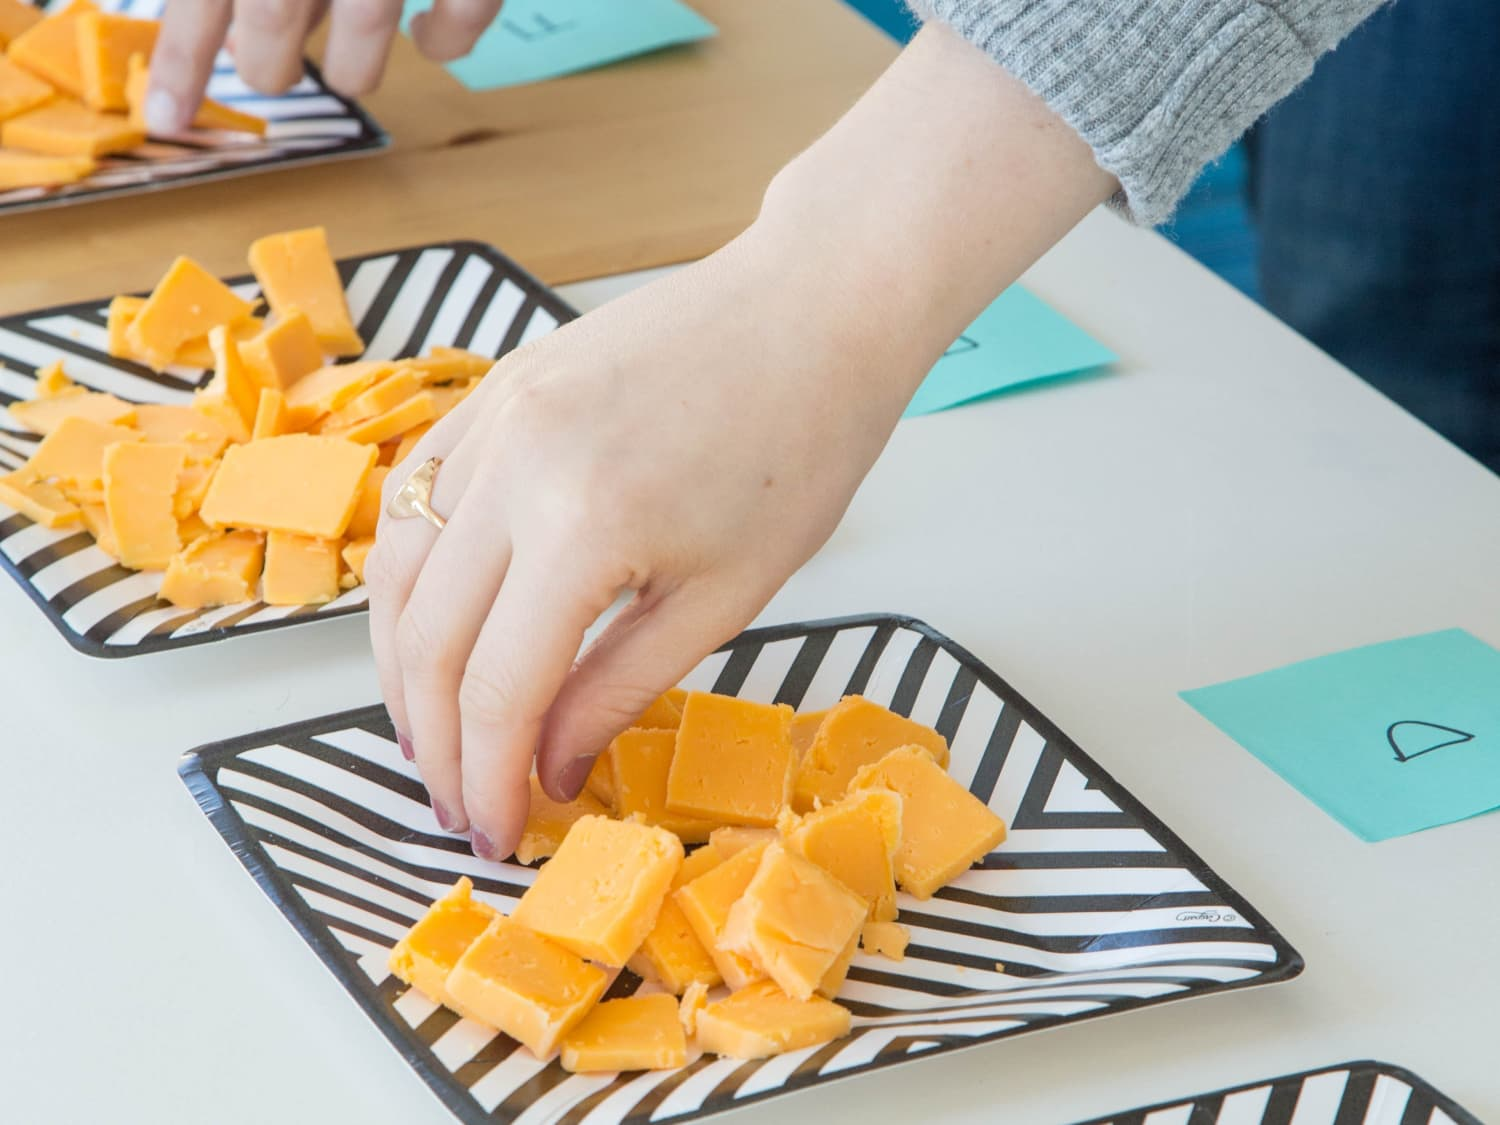 The Cheddar Cheese Taste Test: We Tried 8 Brands and Here's Our